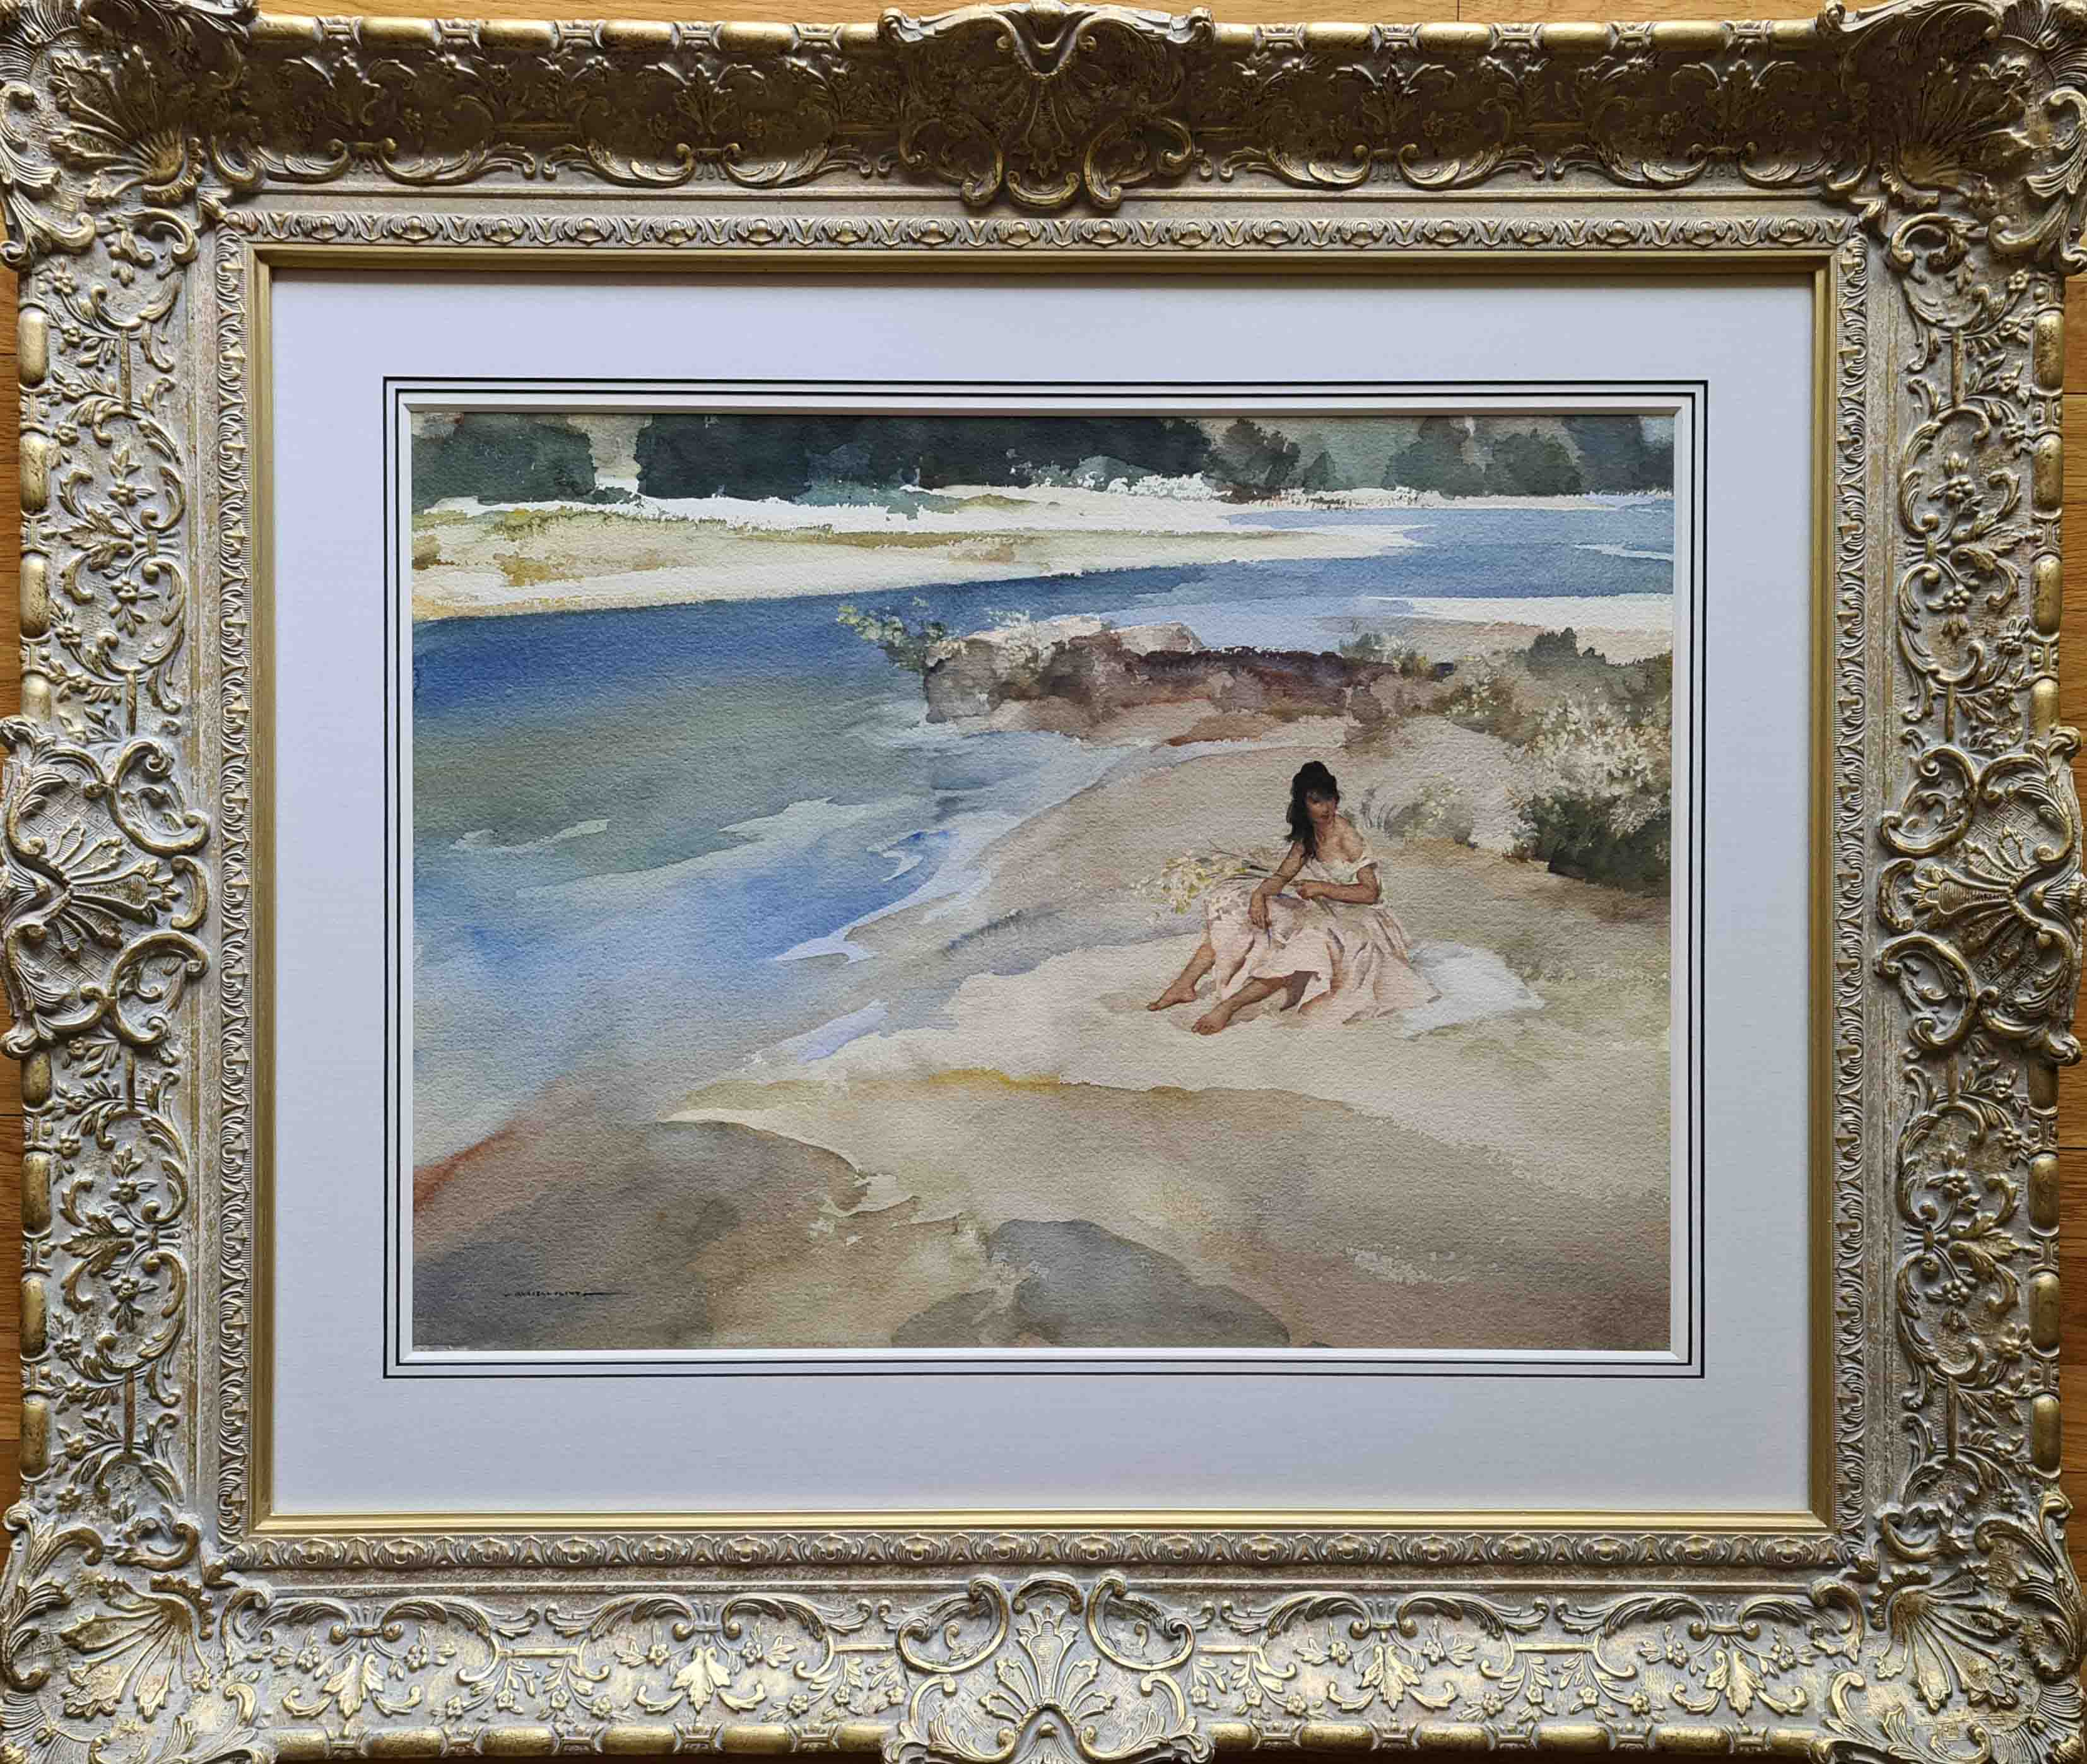 russell flint, original painting, Springtime in the Ardeche, France